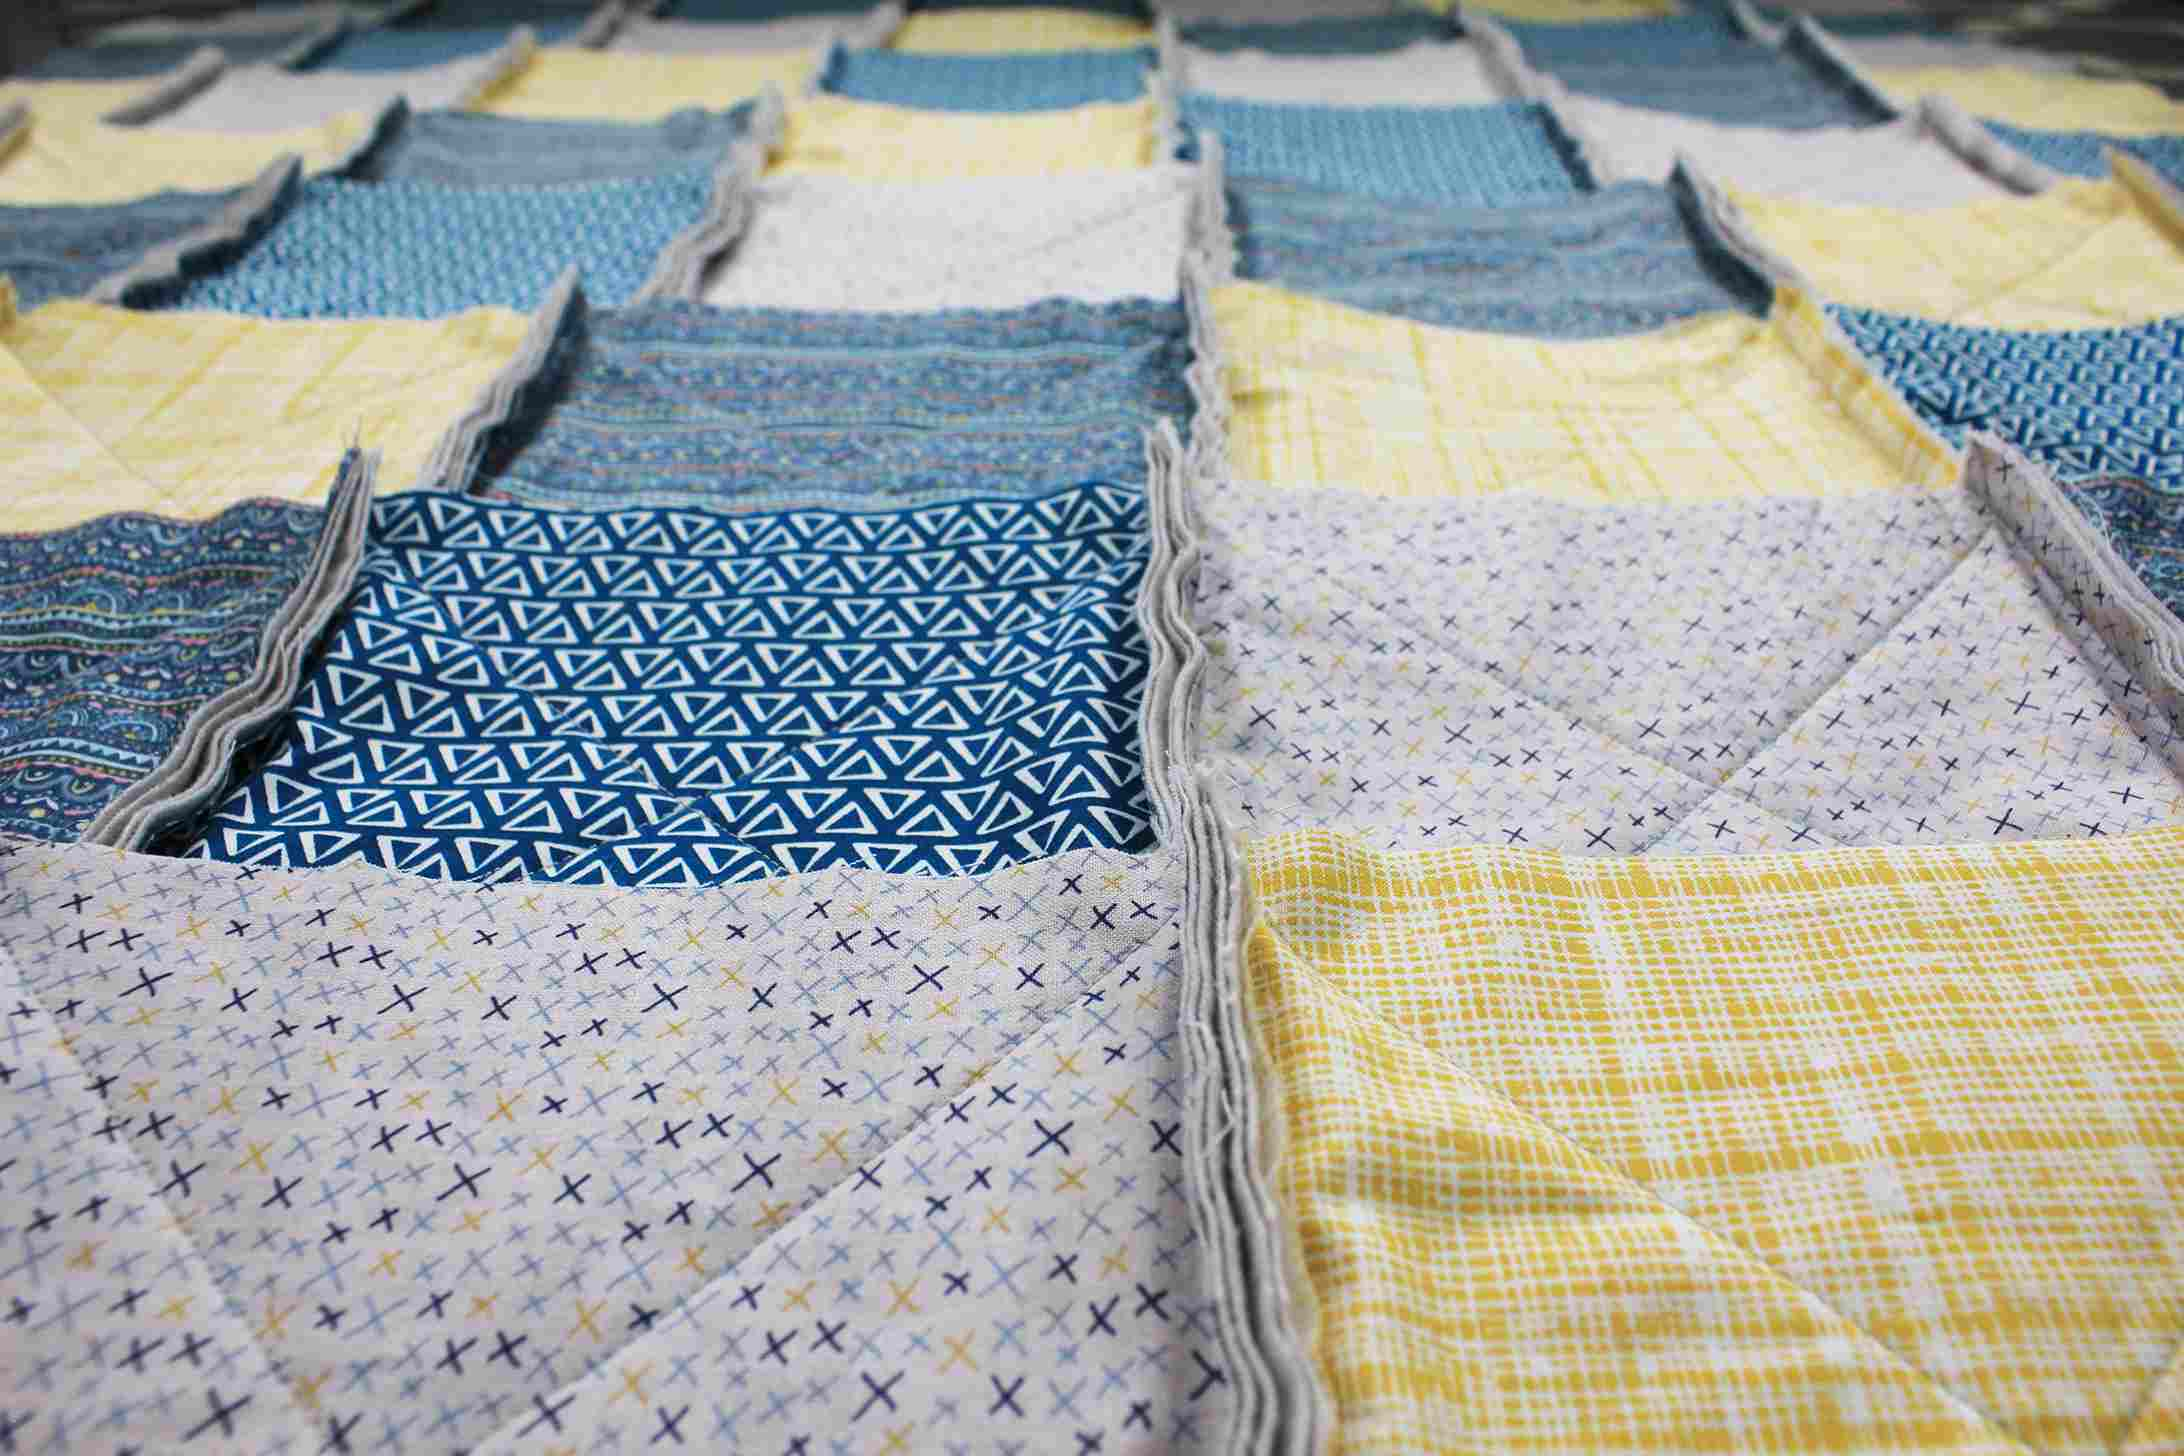 Rows of quilt stacks